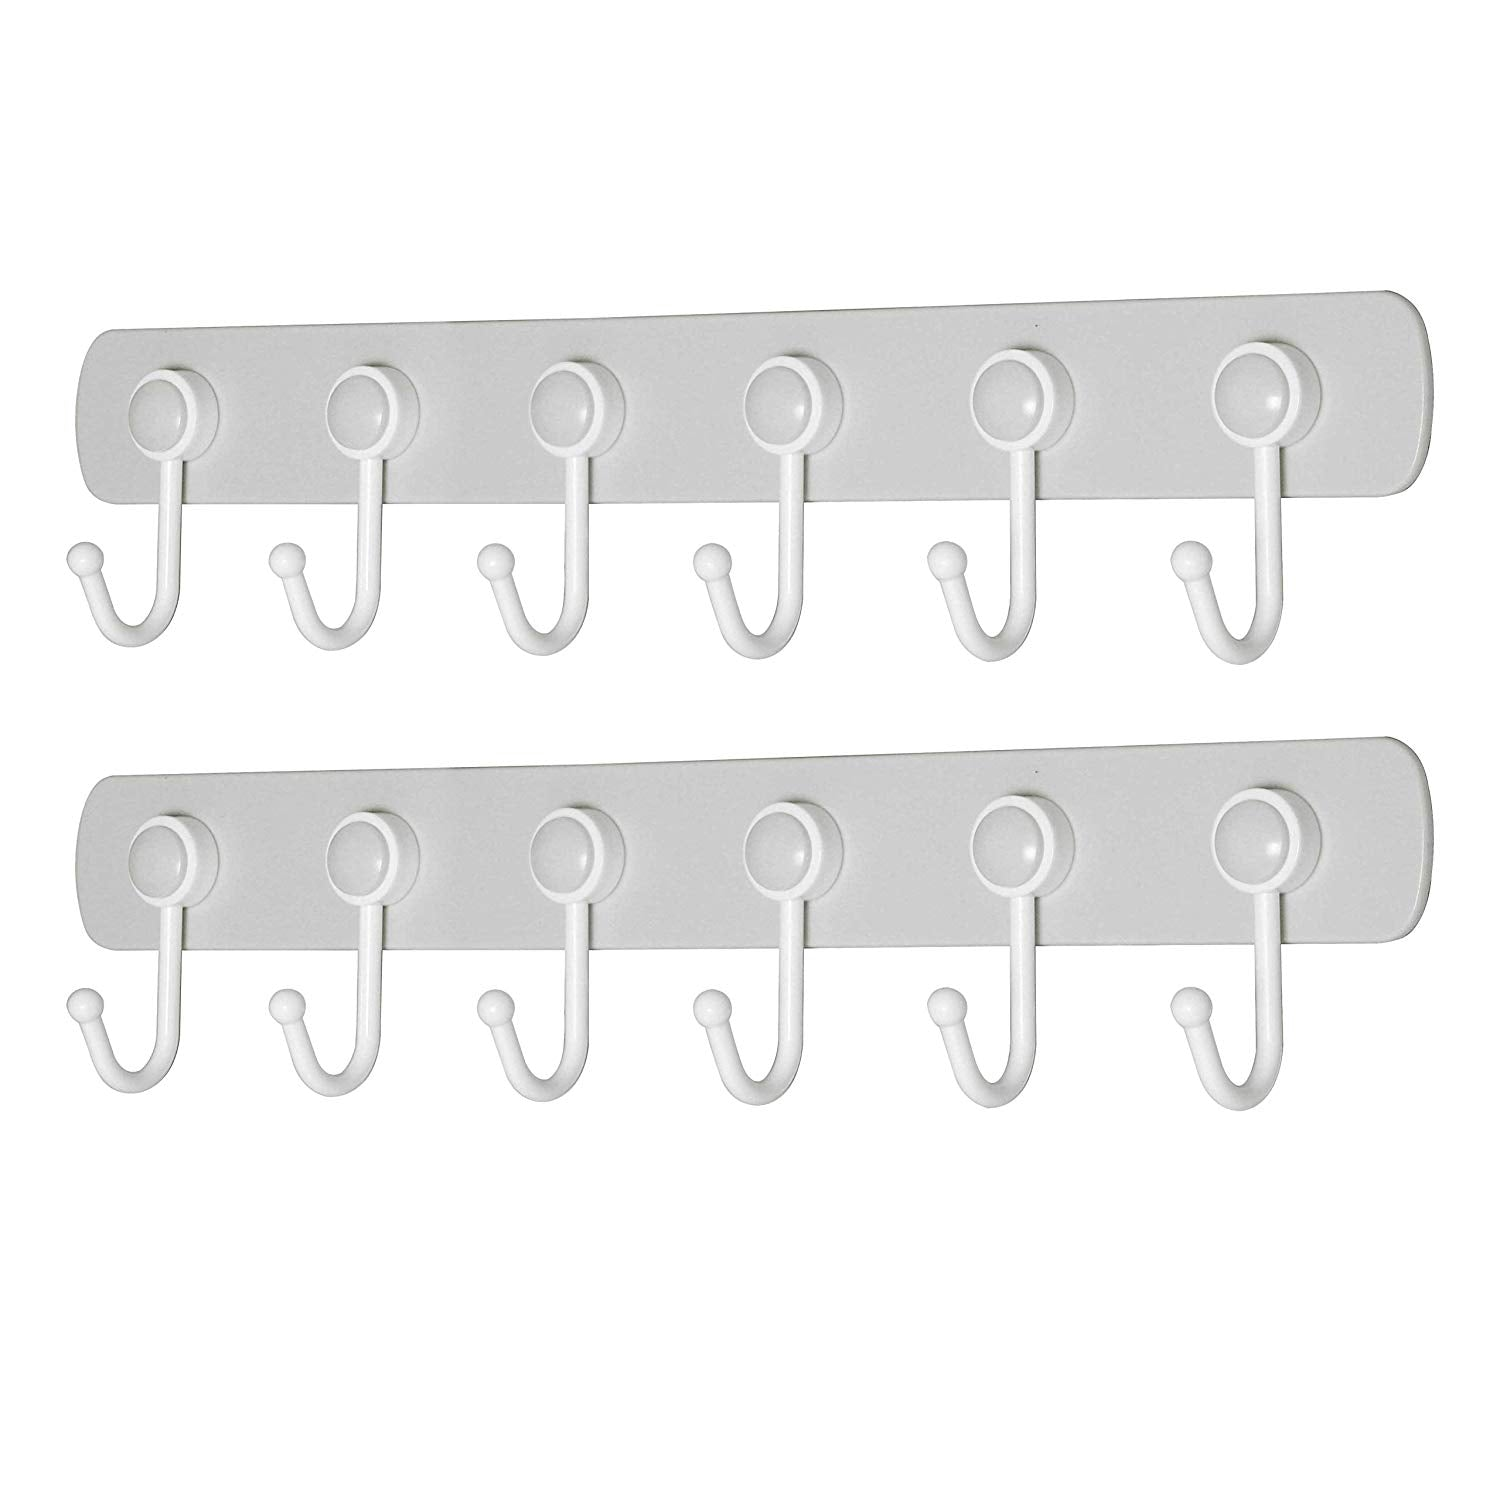 WEBI Wall Hooks Adhesive: 360°Rotatable, Ultra-Stick, Heavy Duty, Waterproof, 6-J-Hook, Plastic Utility Hook, Wall Hanger Rack Holder for Coat Towel Hats Keys Scarf Purse Kitchen Utensil – Grey,2 Pcs